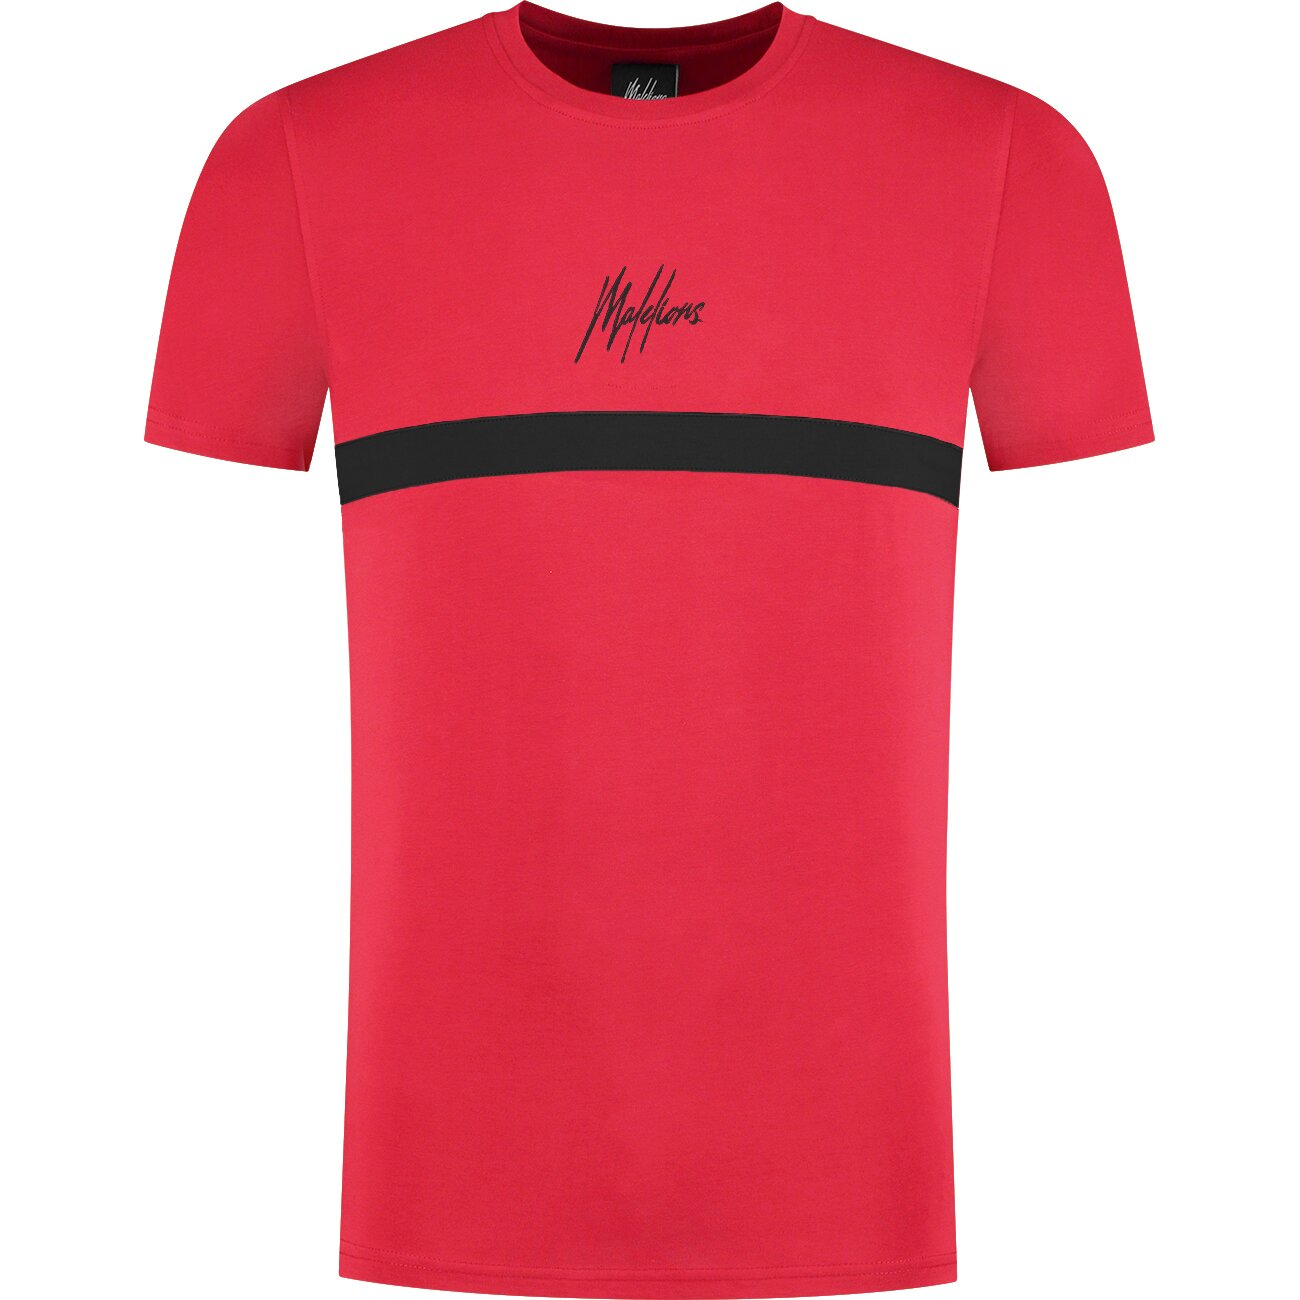 Malelions Junior Tonny T-Shirt - Red/Black